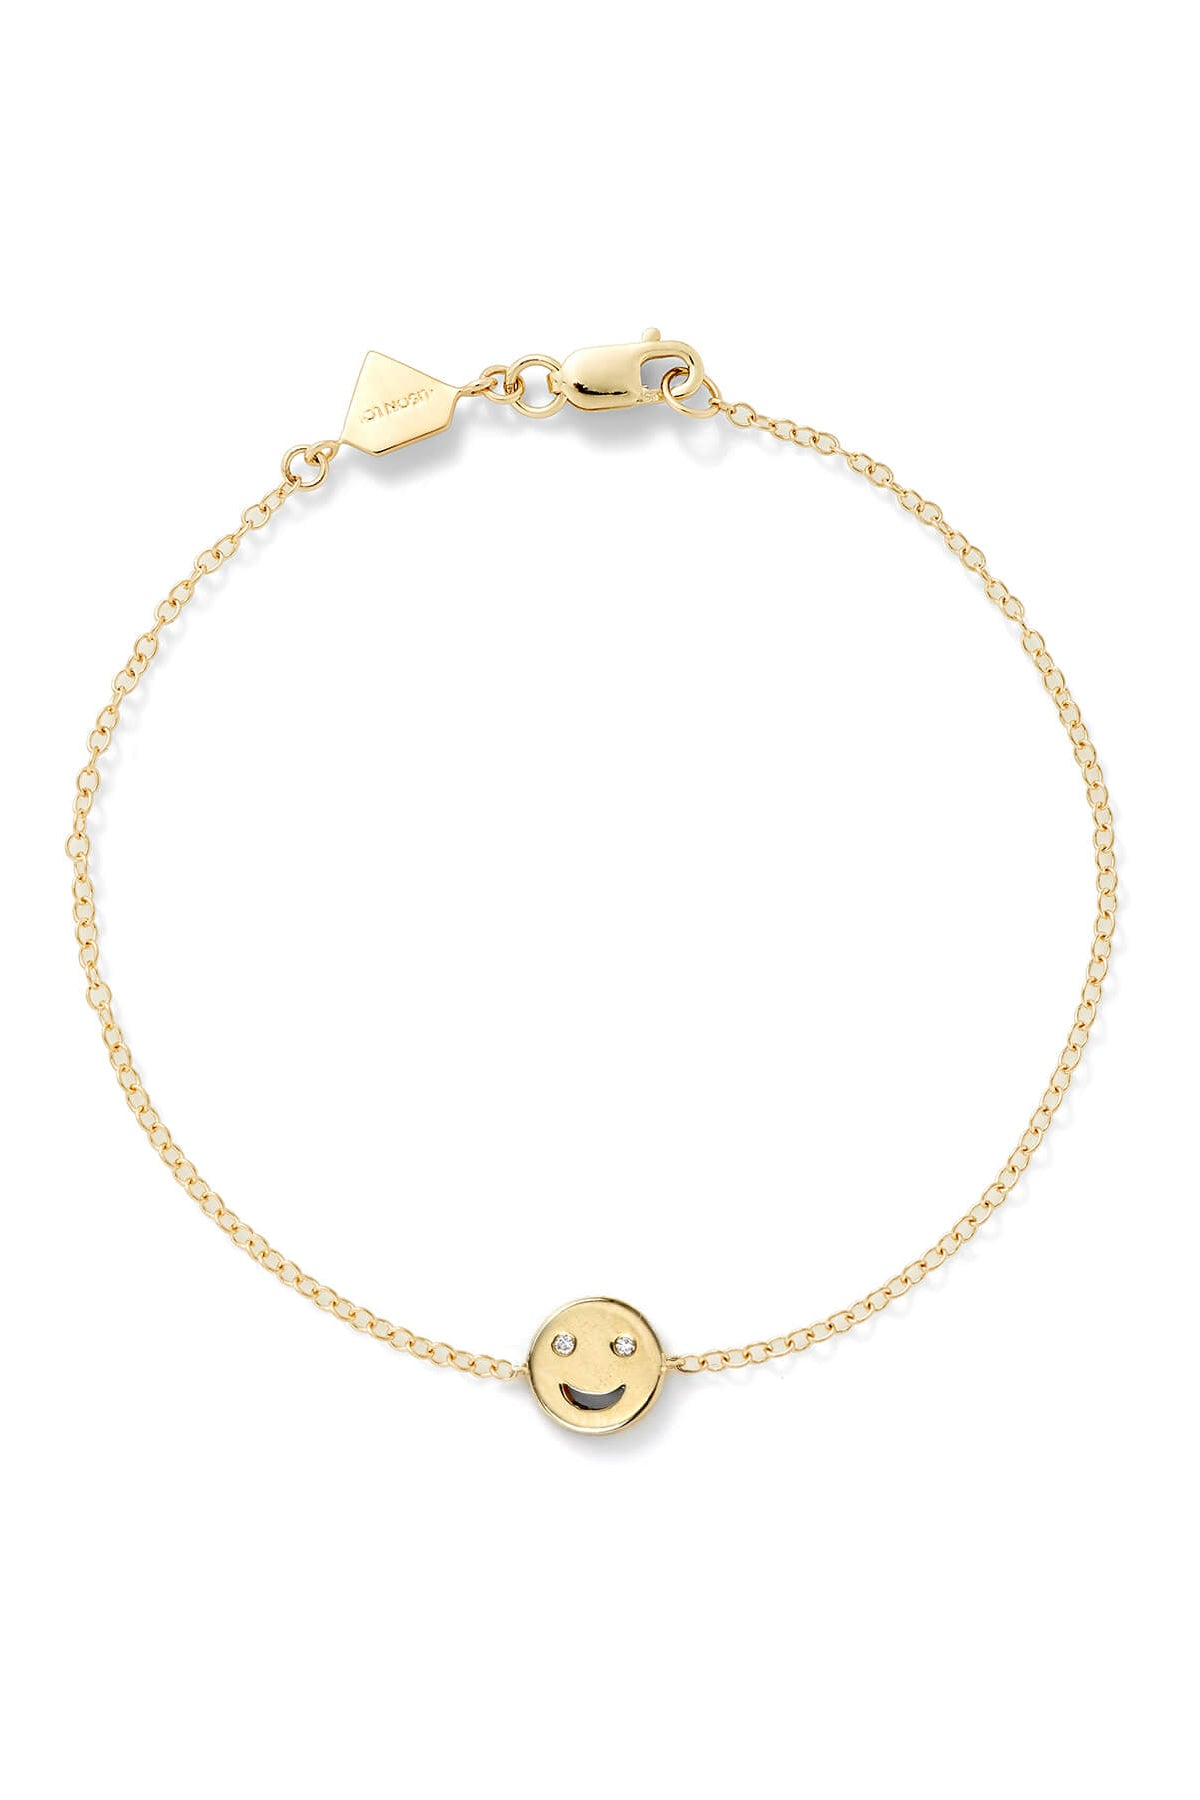 Single Happy Bracelet - In Stock